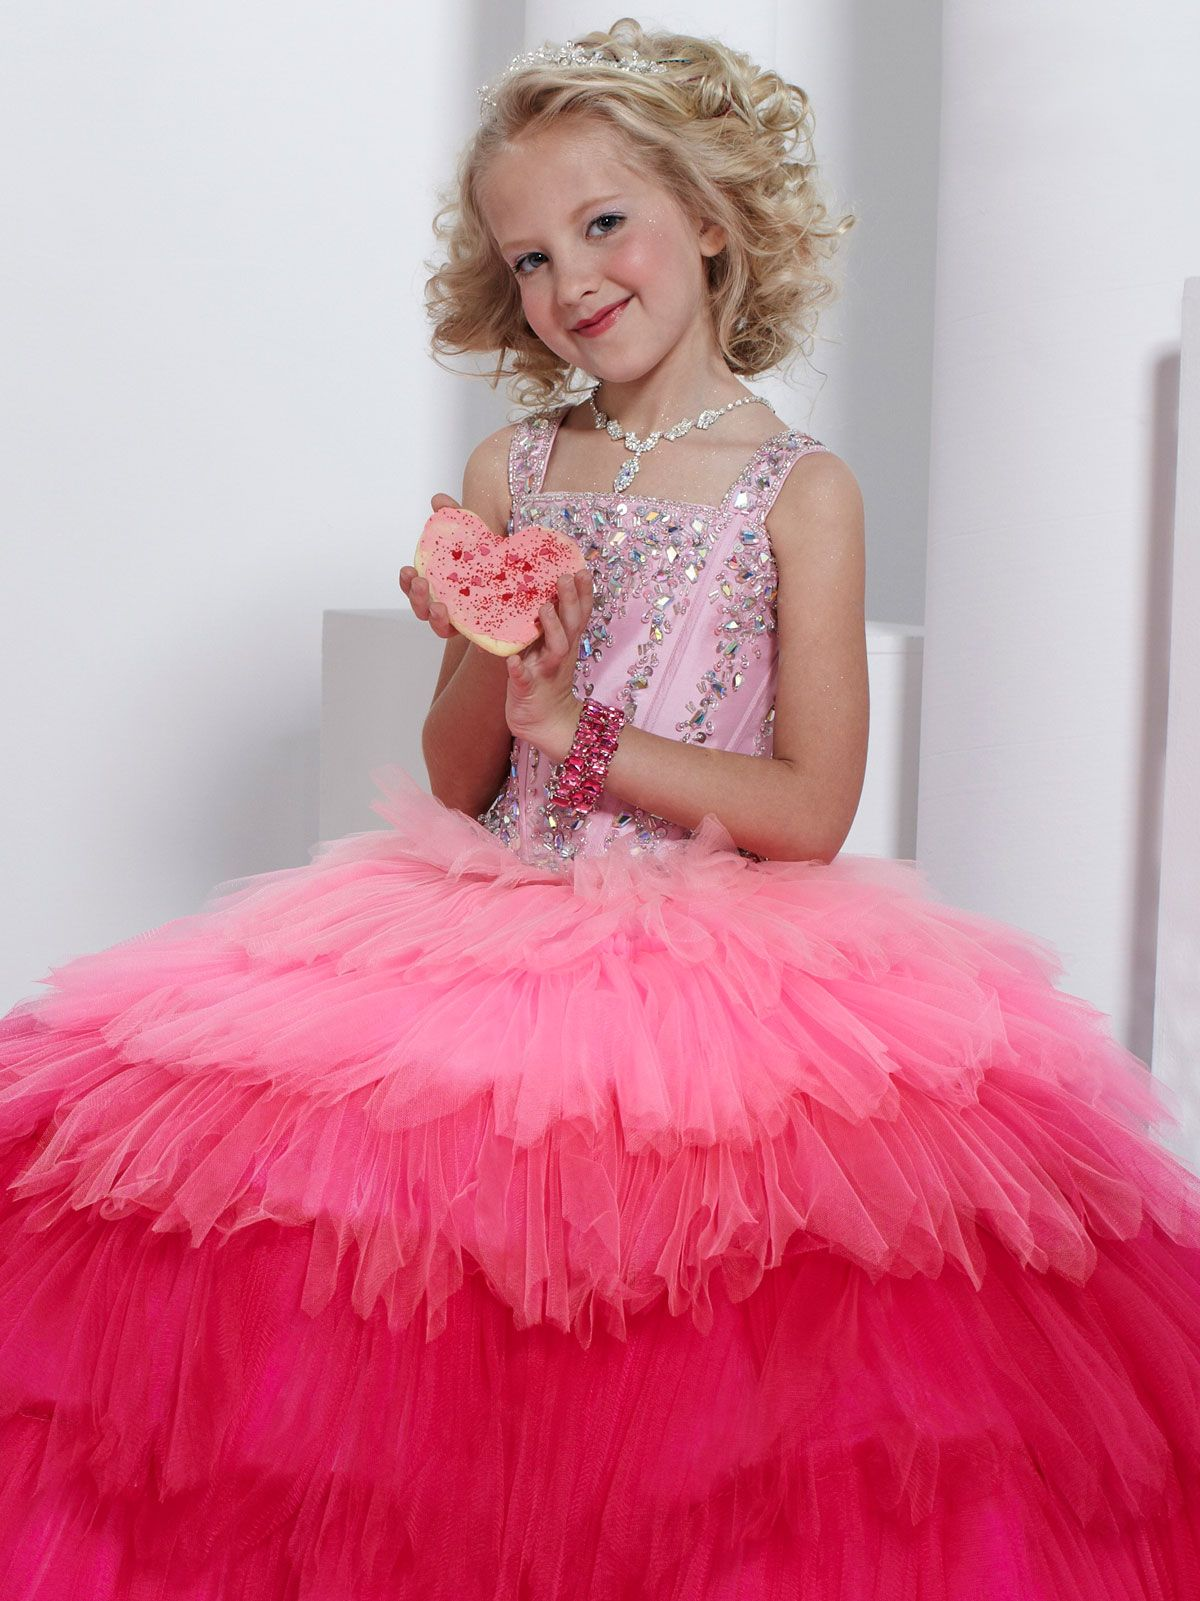 Cute Tiffany Princess Pageant Dress 13317. This taffeta and tulle pageant gown features wide tank straps, square neckline, and beaded and embroidered bodice. Completing the look of this pageant dress is a tiered ball gown skirt. This sweet dress will make your girl feel like a princess. Available in Fuchsia/Pink and Peacock/Sky.